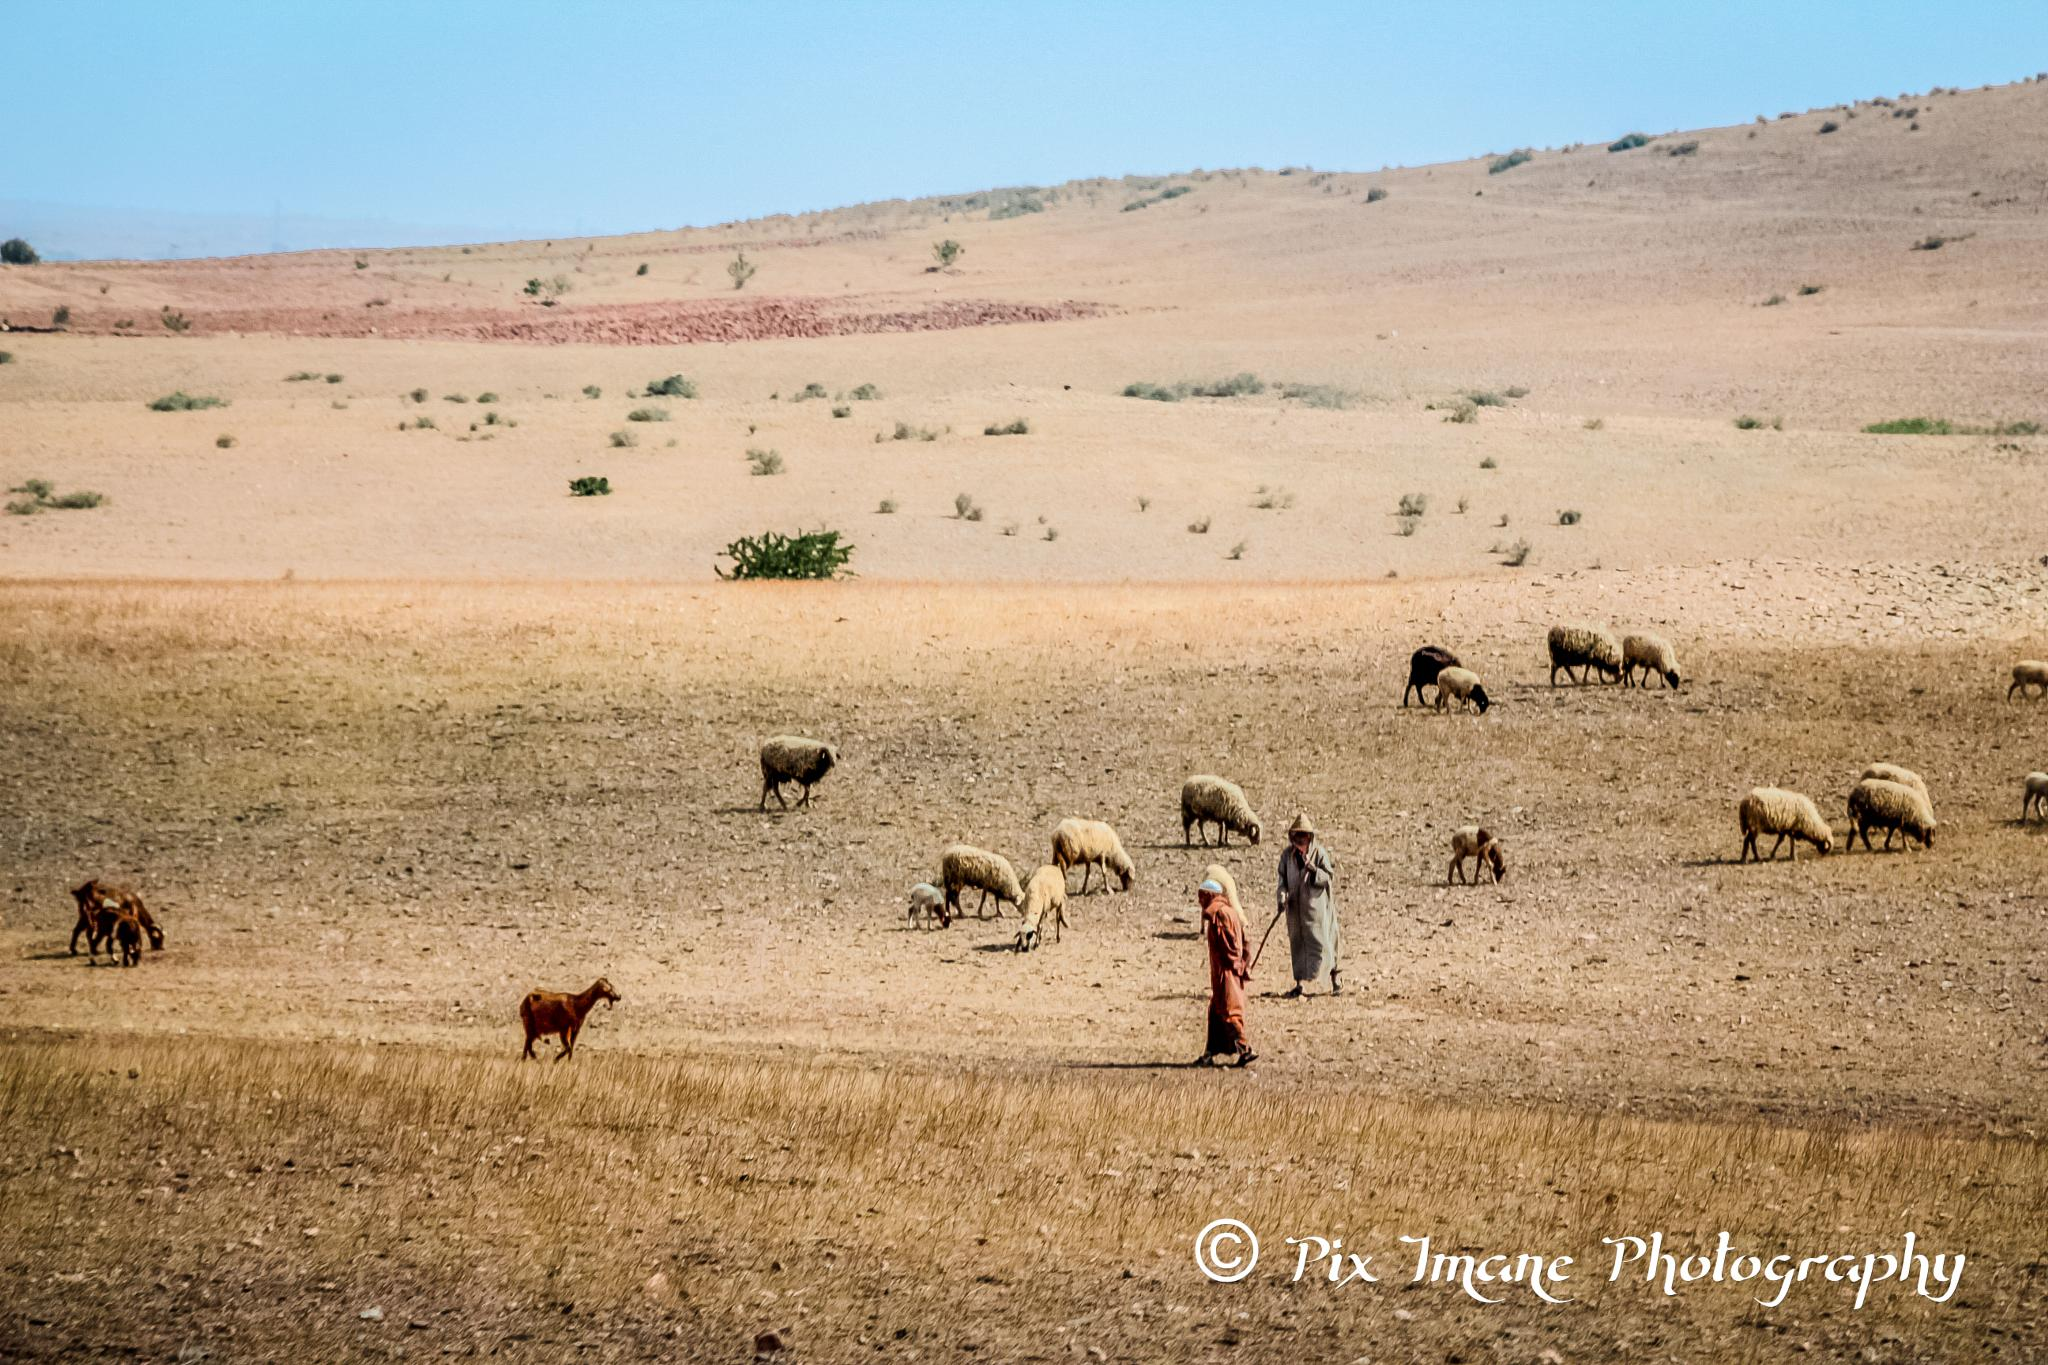 Sheepherd in Morocco by PixImane Photography